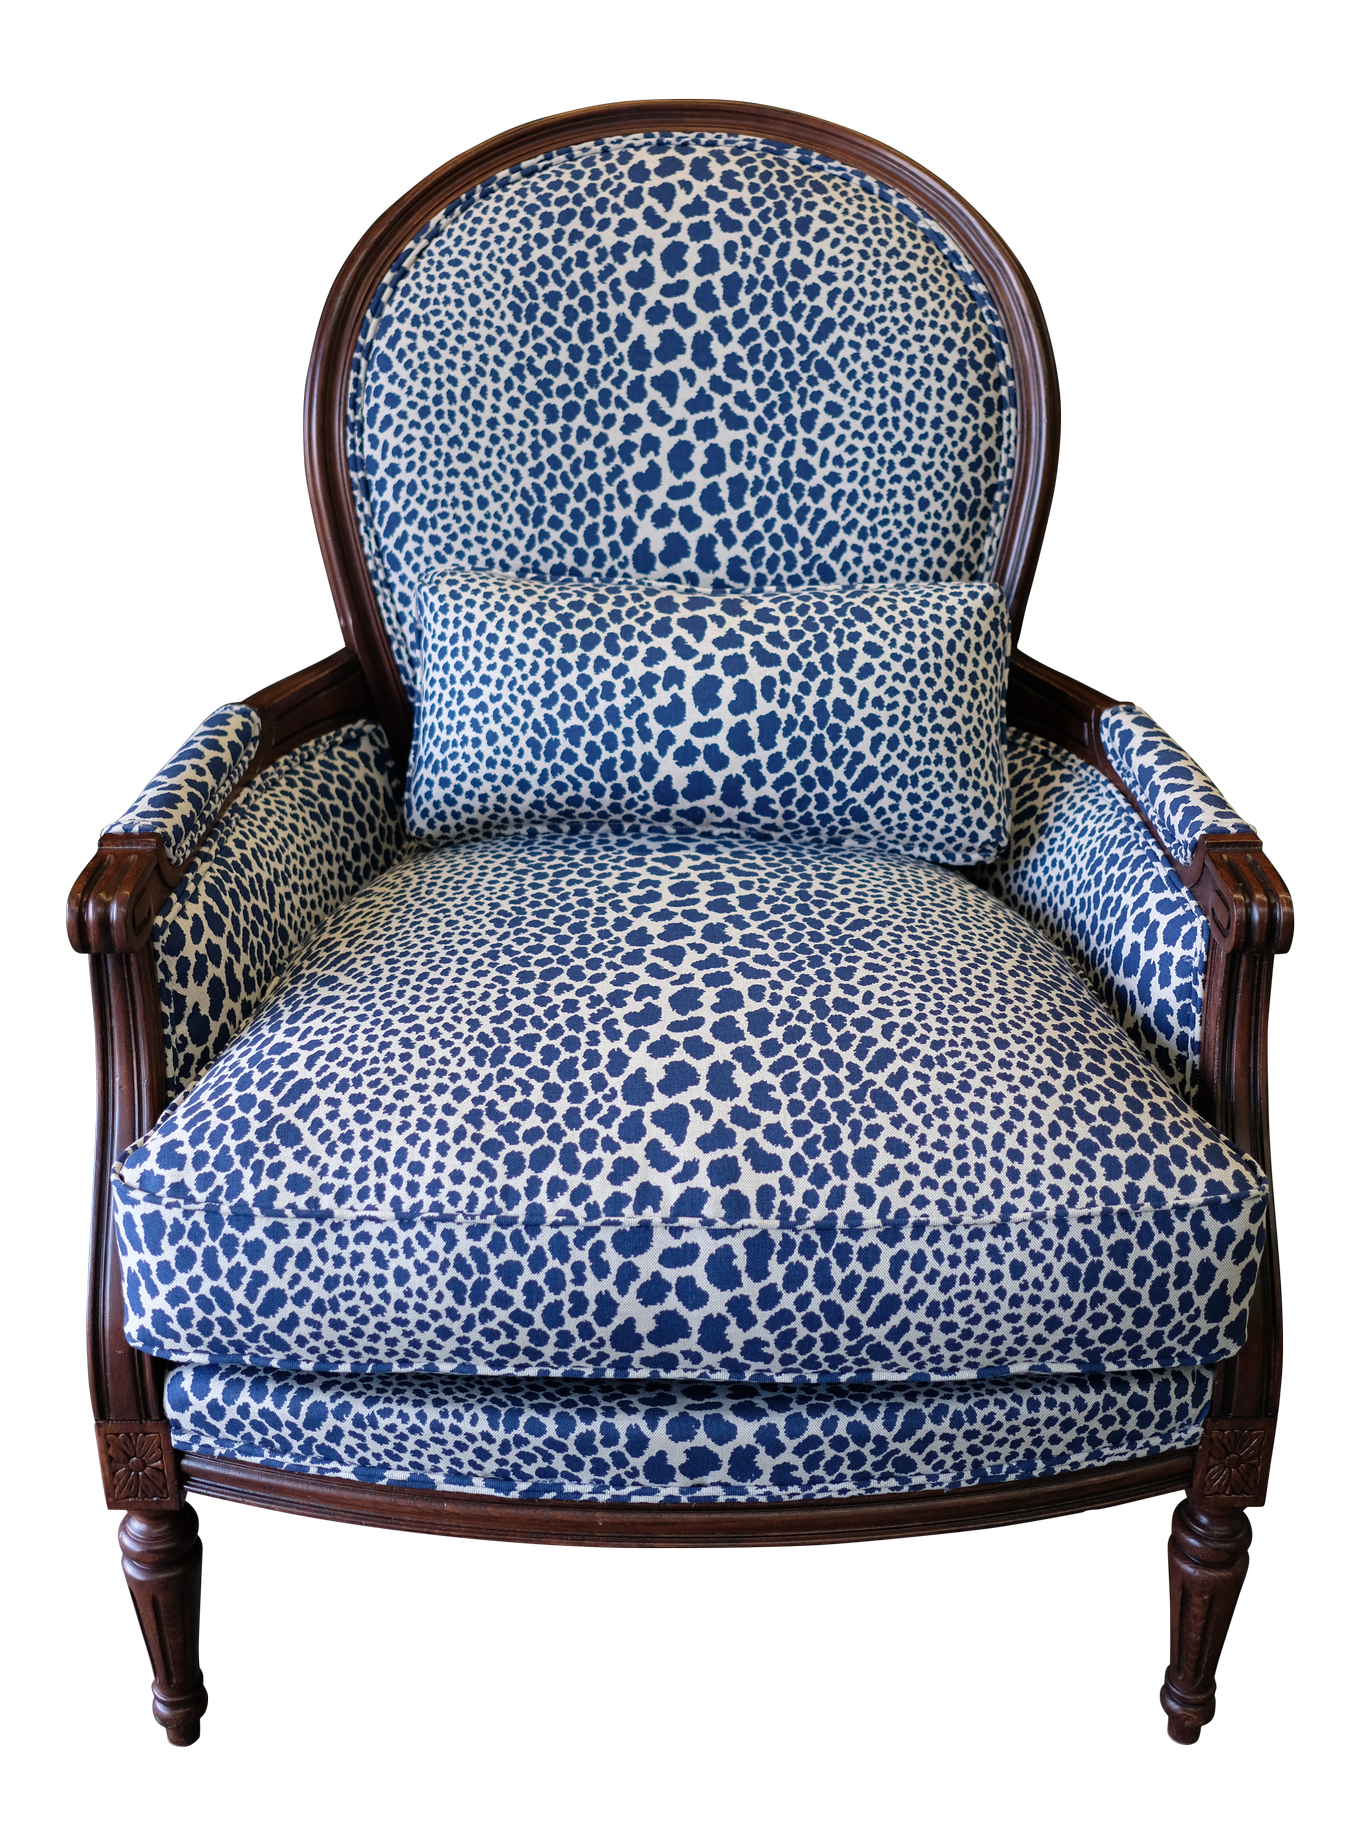 CHAIR_BLUE LEOPARD